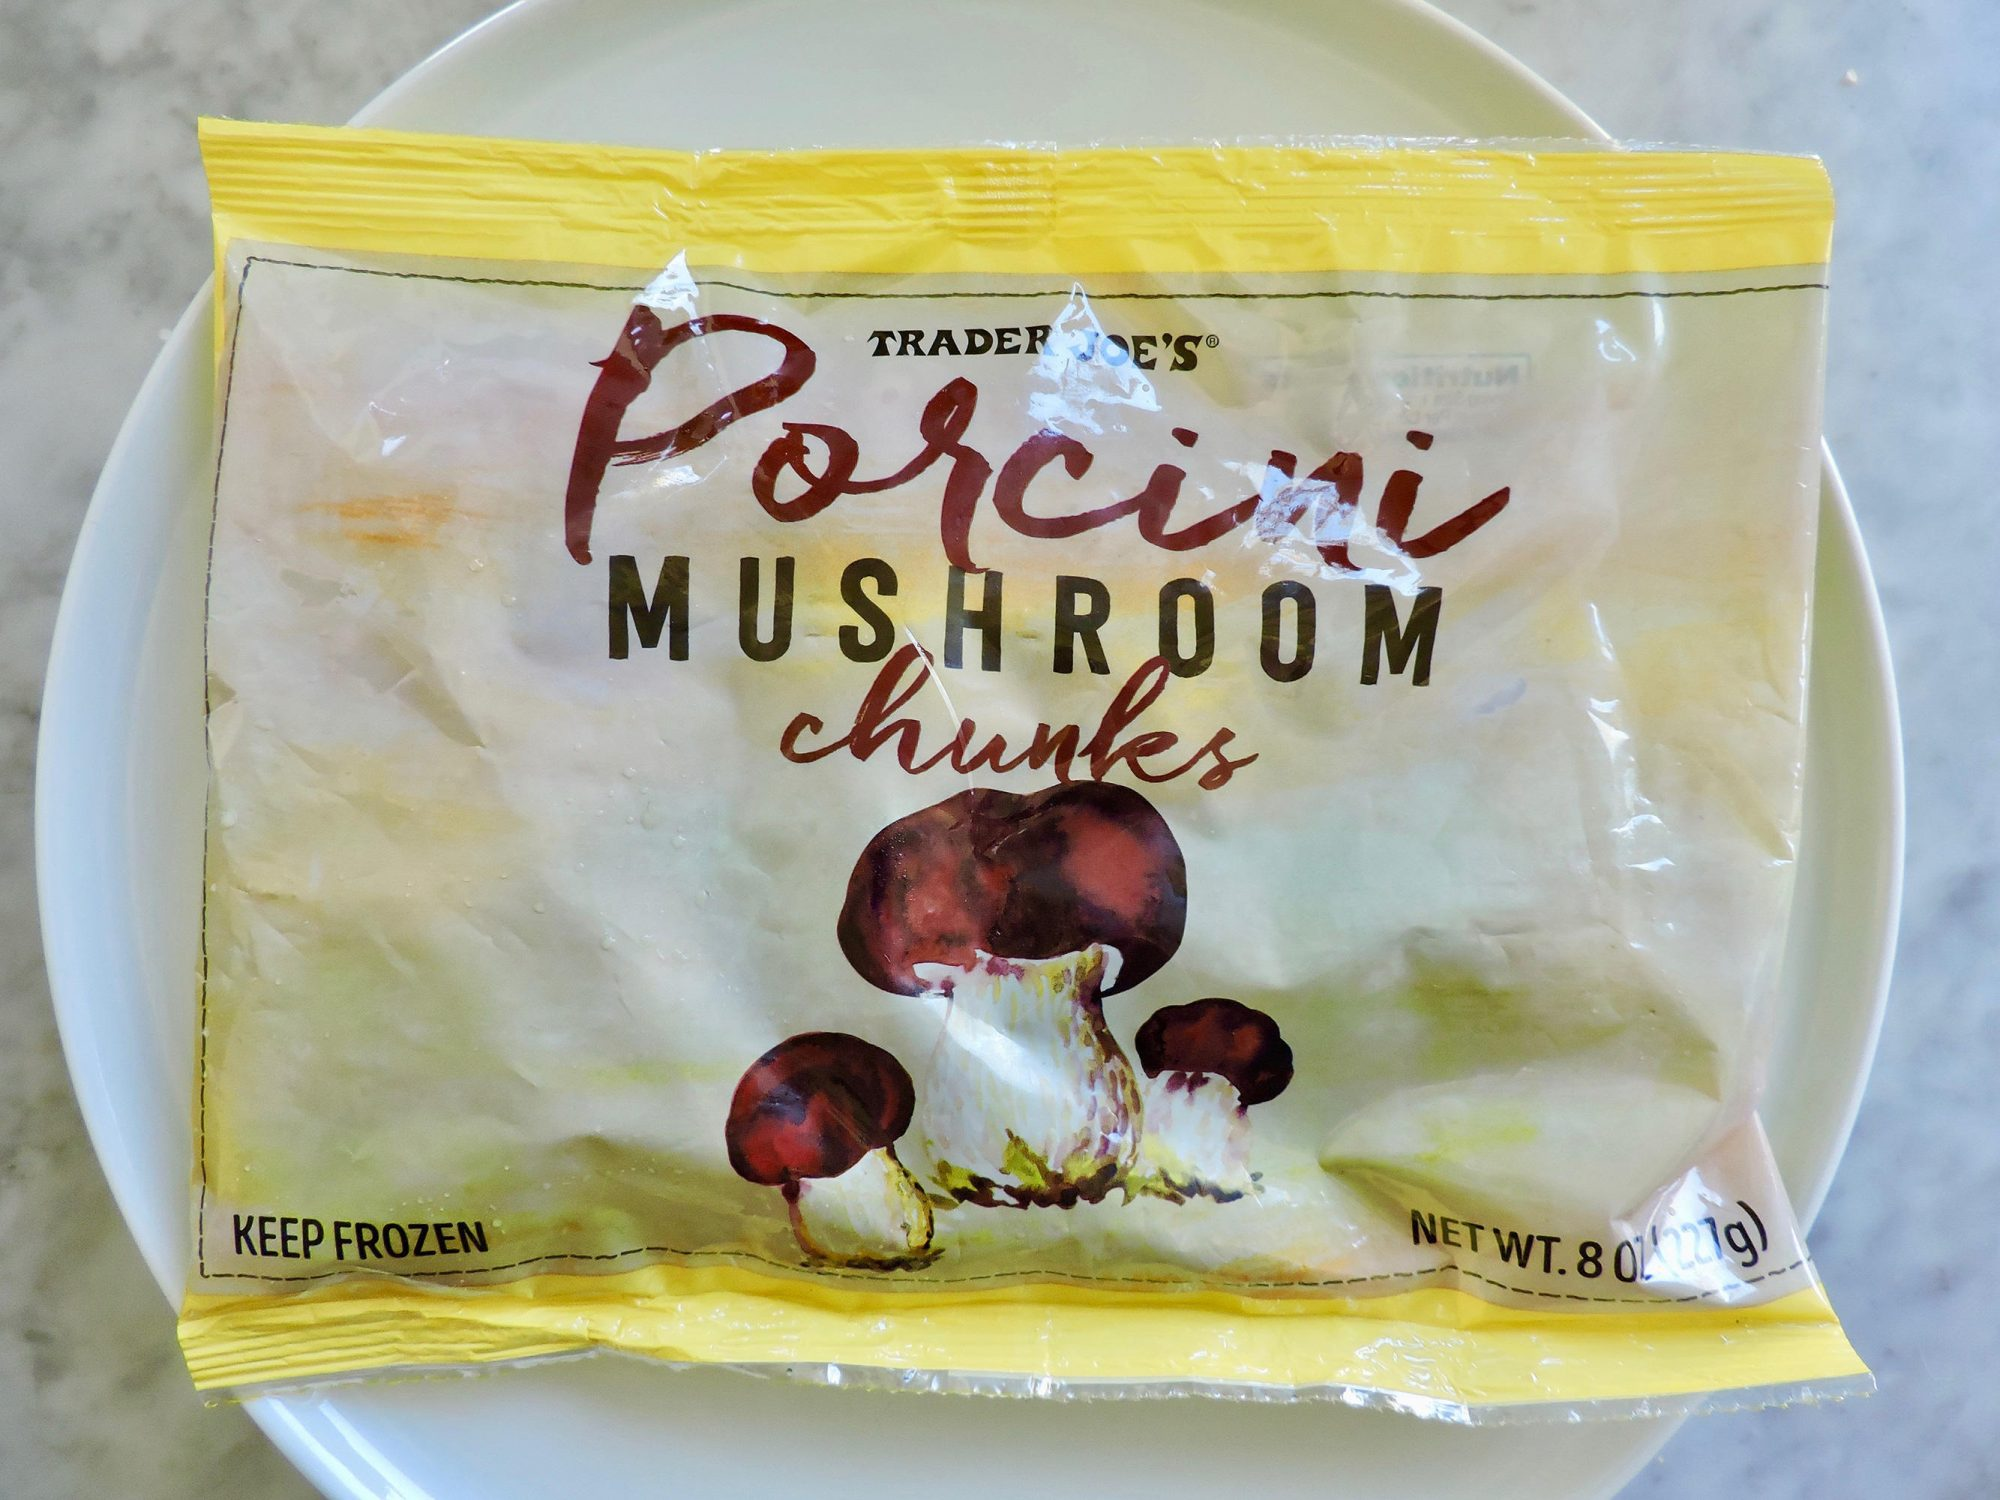 15 Nutritionist-Approved Trader Joe's Foods for $5 or Less 1804w-Porcini-Mushroom-Chunks